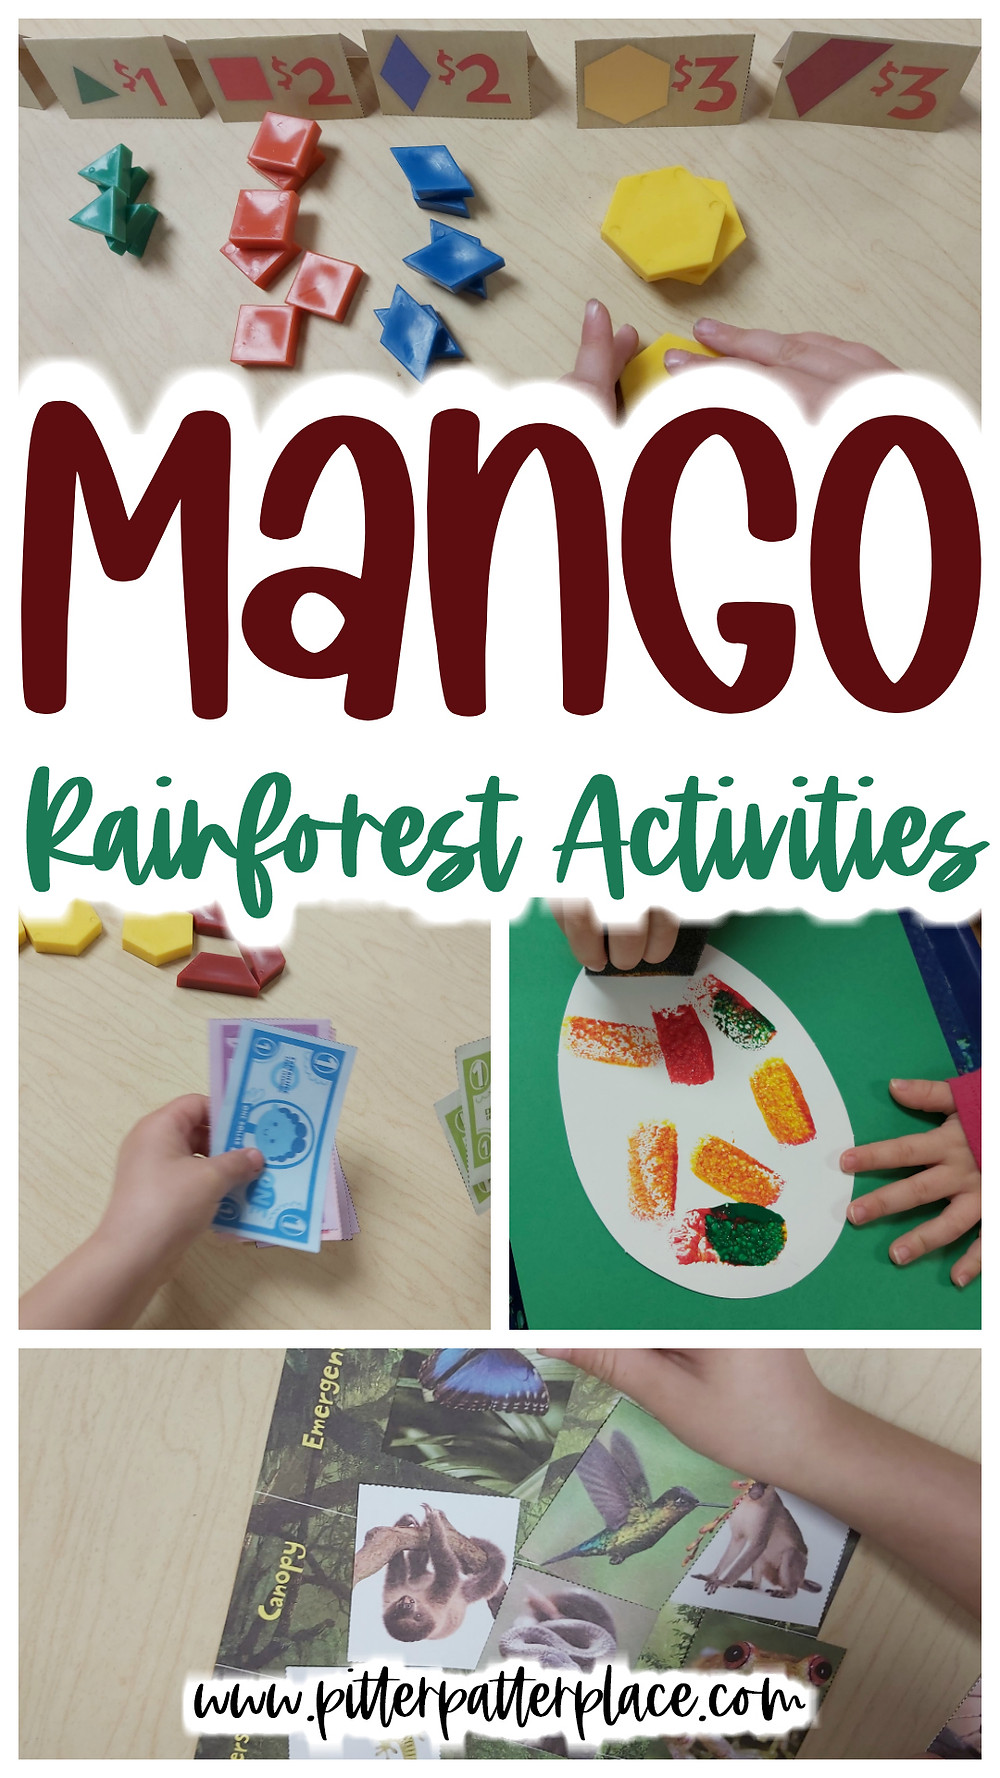 collage of rainforest activities with text: Mango Rainforest Activities